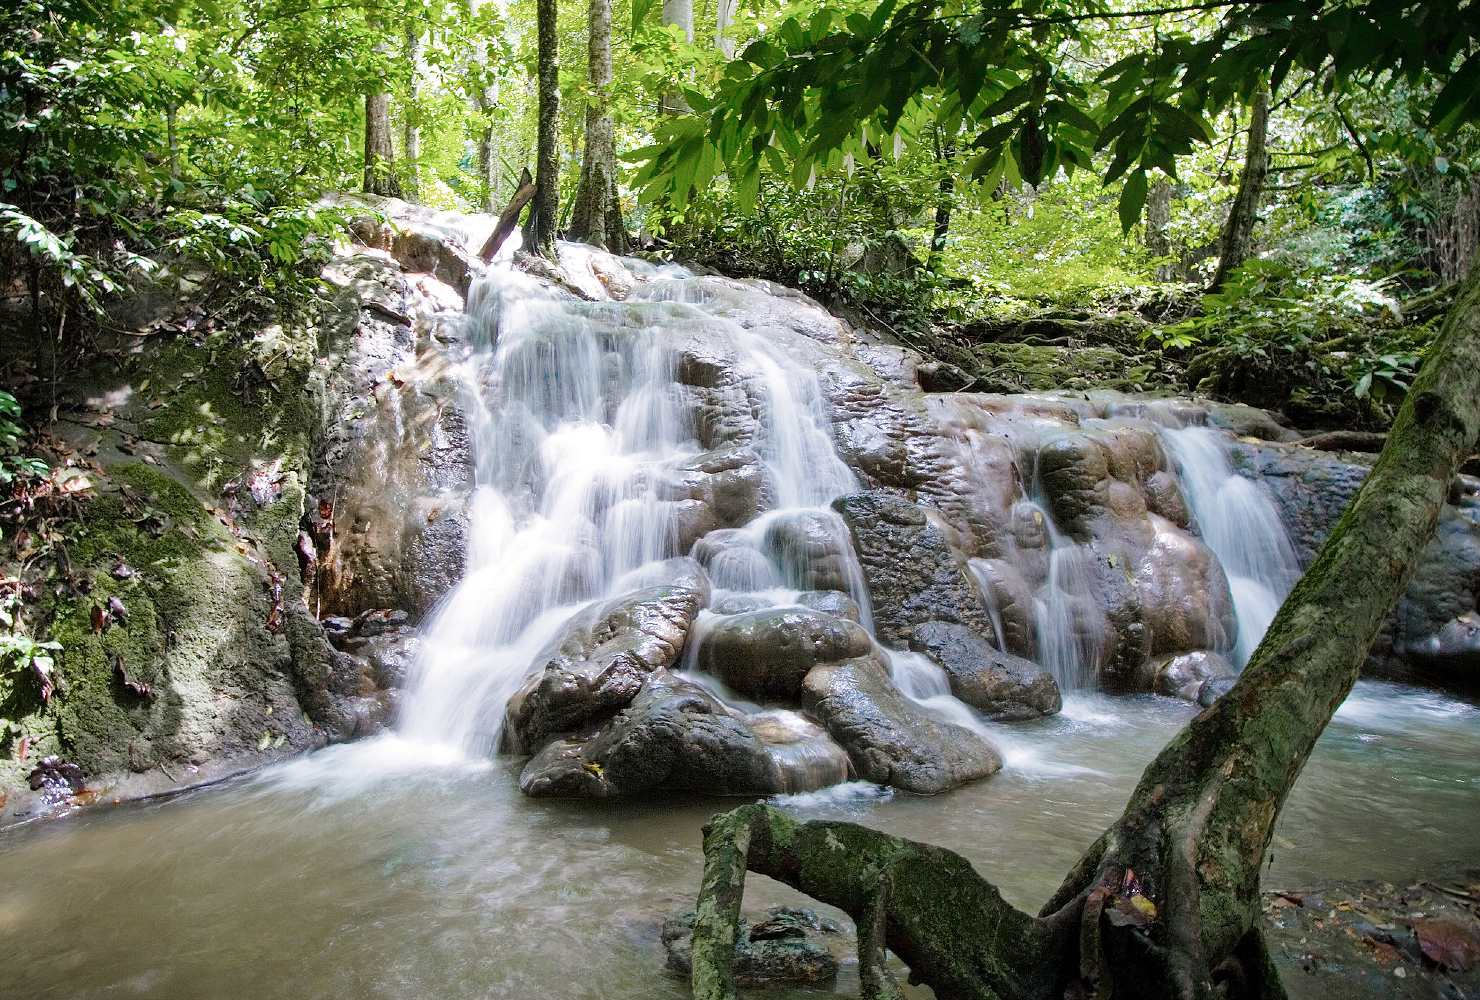 Phang Nga Town, waterfall in Manora forest park